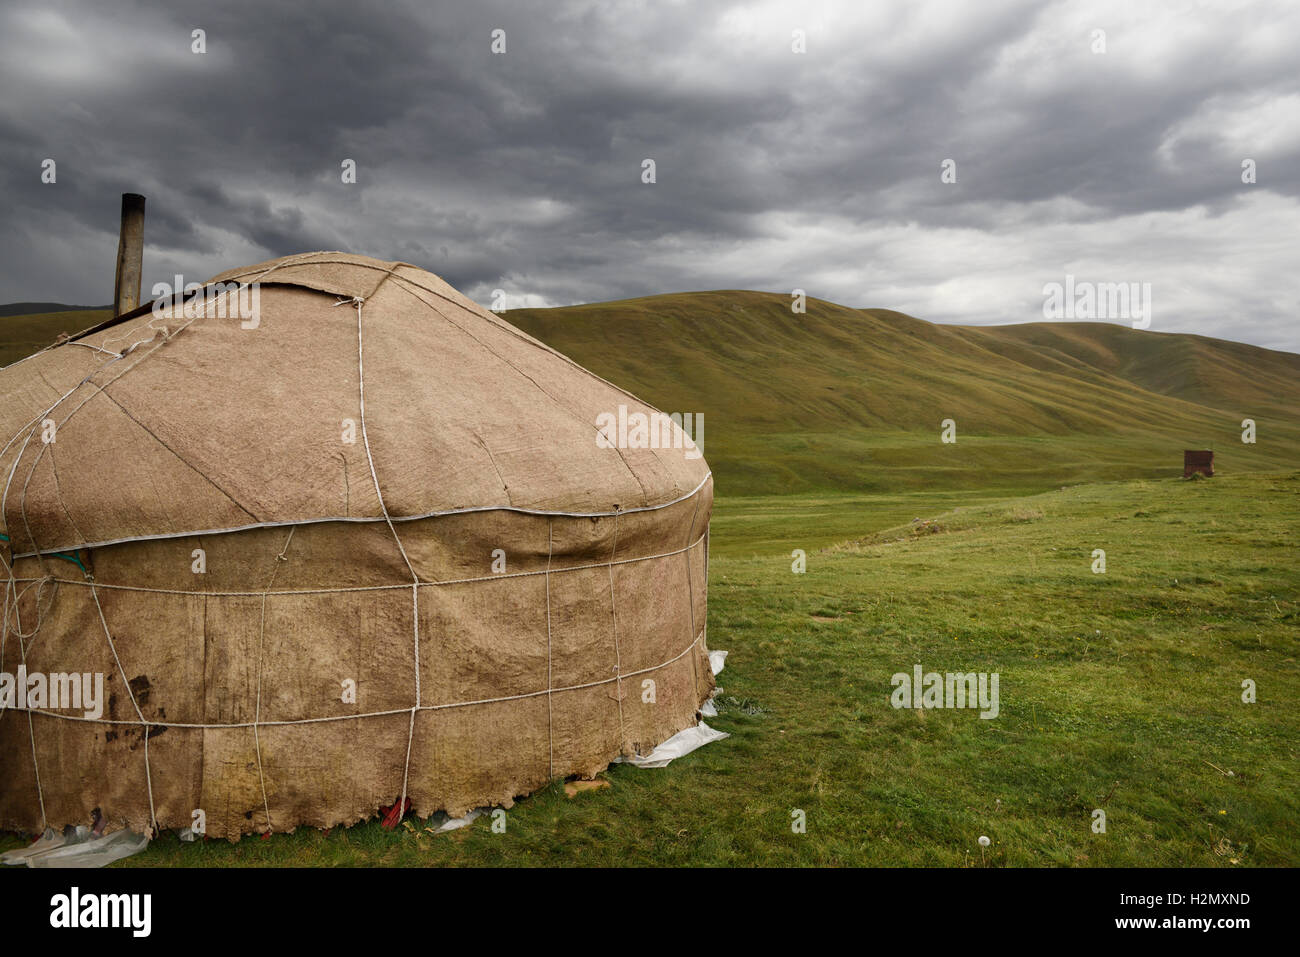 Yurt with chimney and outhouse in barren pastureland of Assy Plateau Kazakhstan Stock Photo